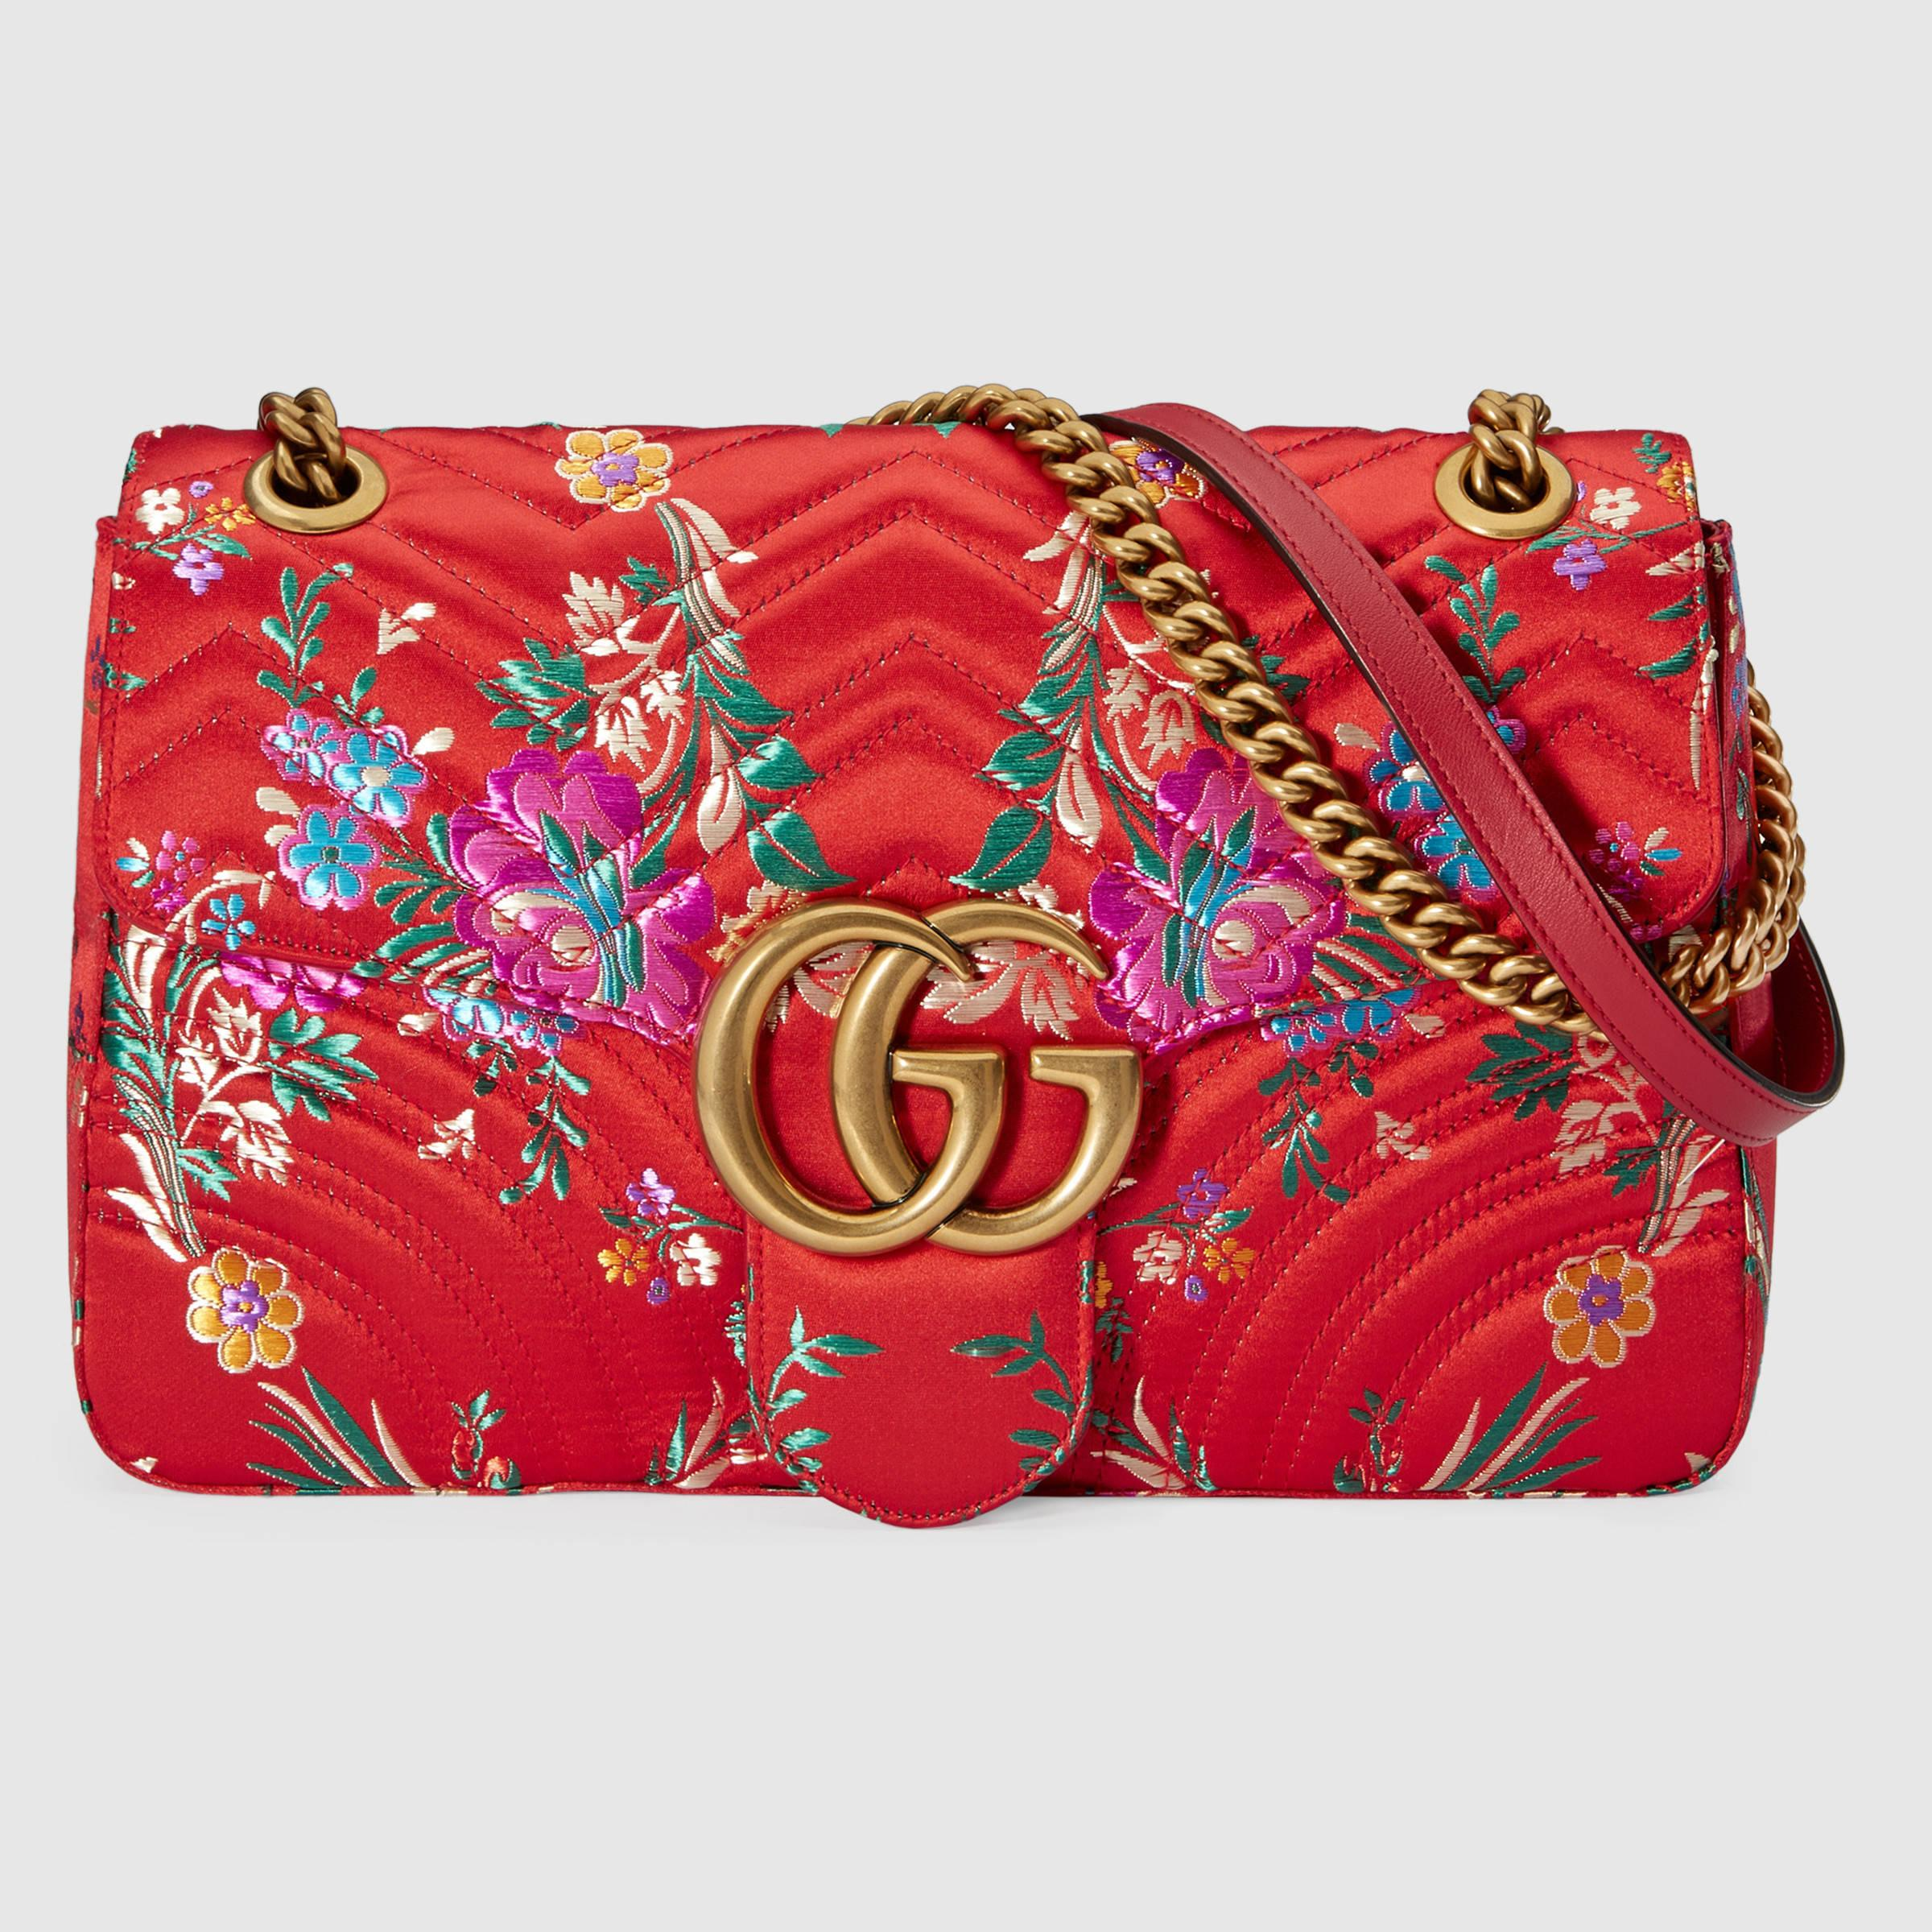 bd714f4c28e9 Gucci Gg Marmont Floral Jacquard Shoulder Bag in Red - Lyst